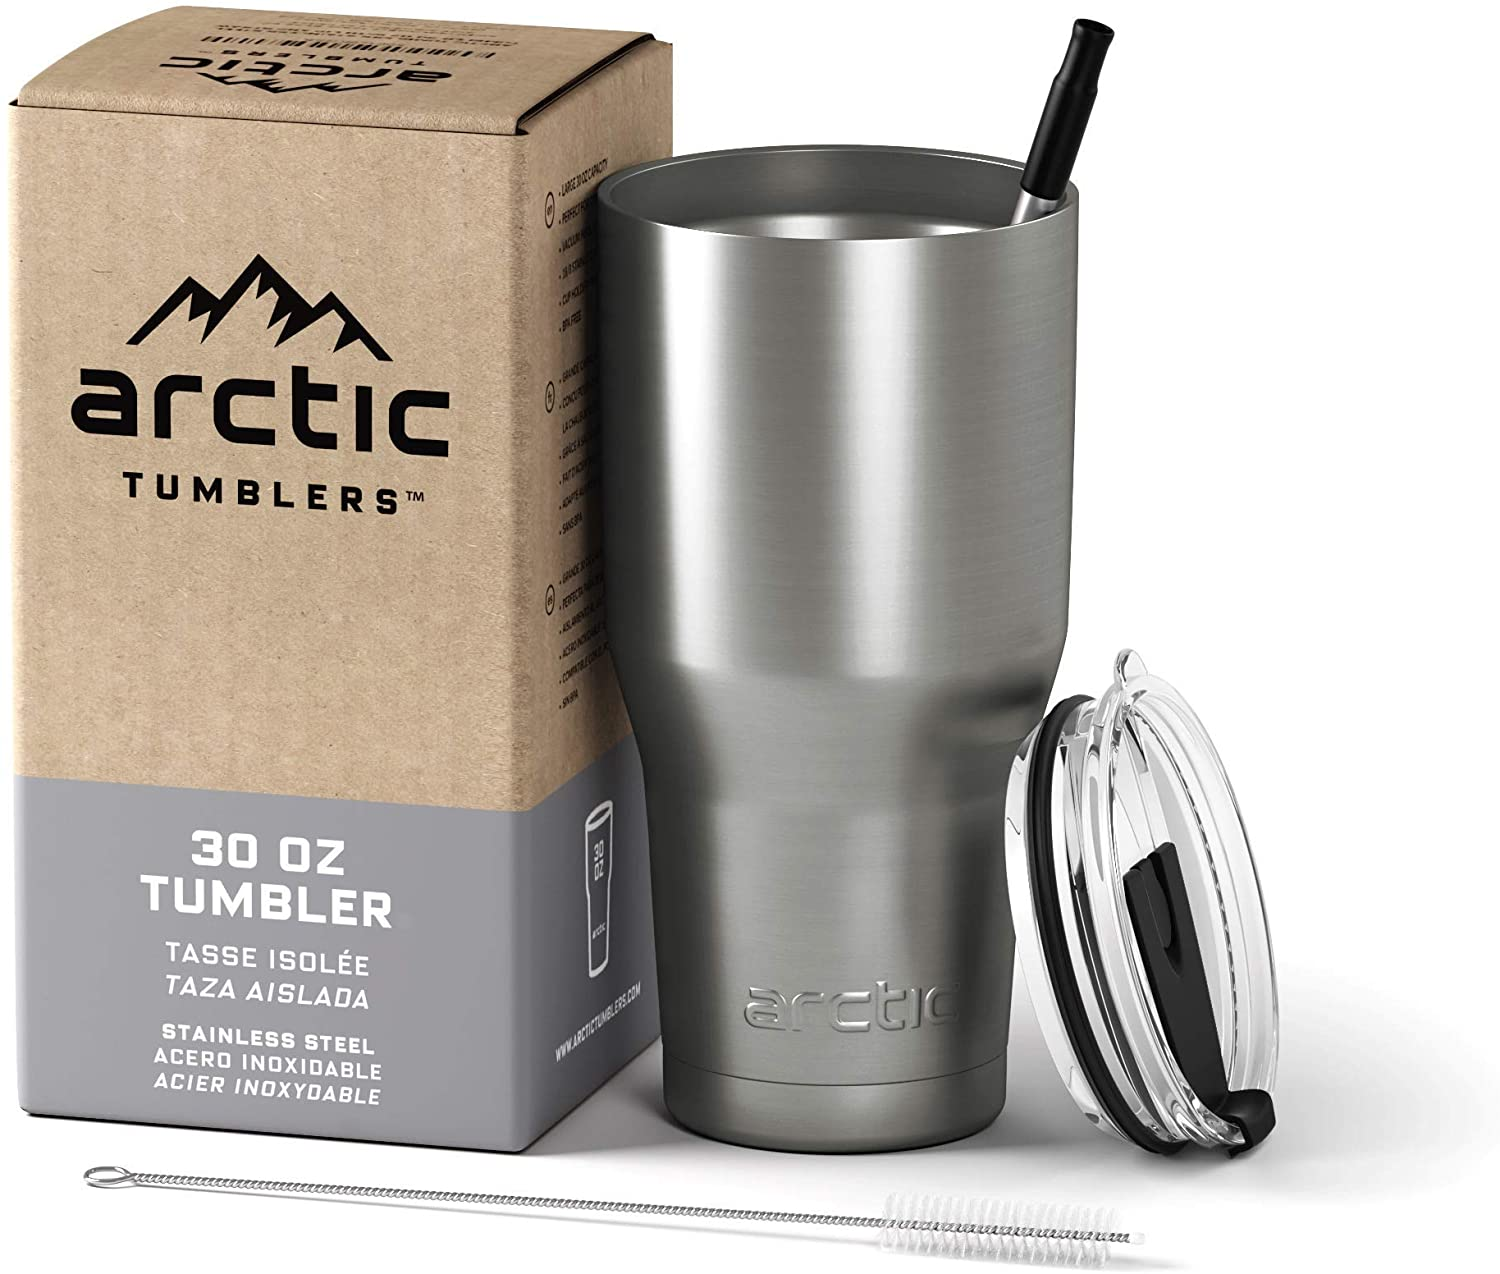 Arctic Tumblers Stainless Steel Camping Travel Tumbler With Splash Proof Lid And Straw Double Wall Vacuum Insulated Premium Insulated Thermos Stainless Steel 30 Oz Tumblers Water Glasses